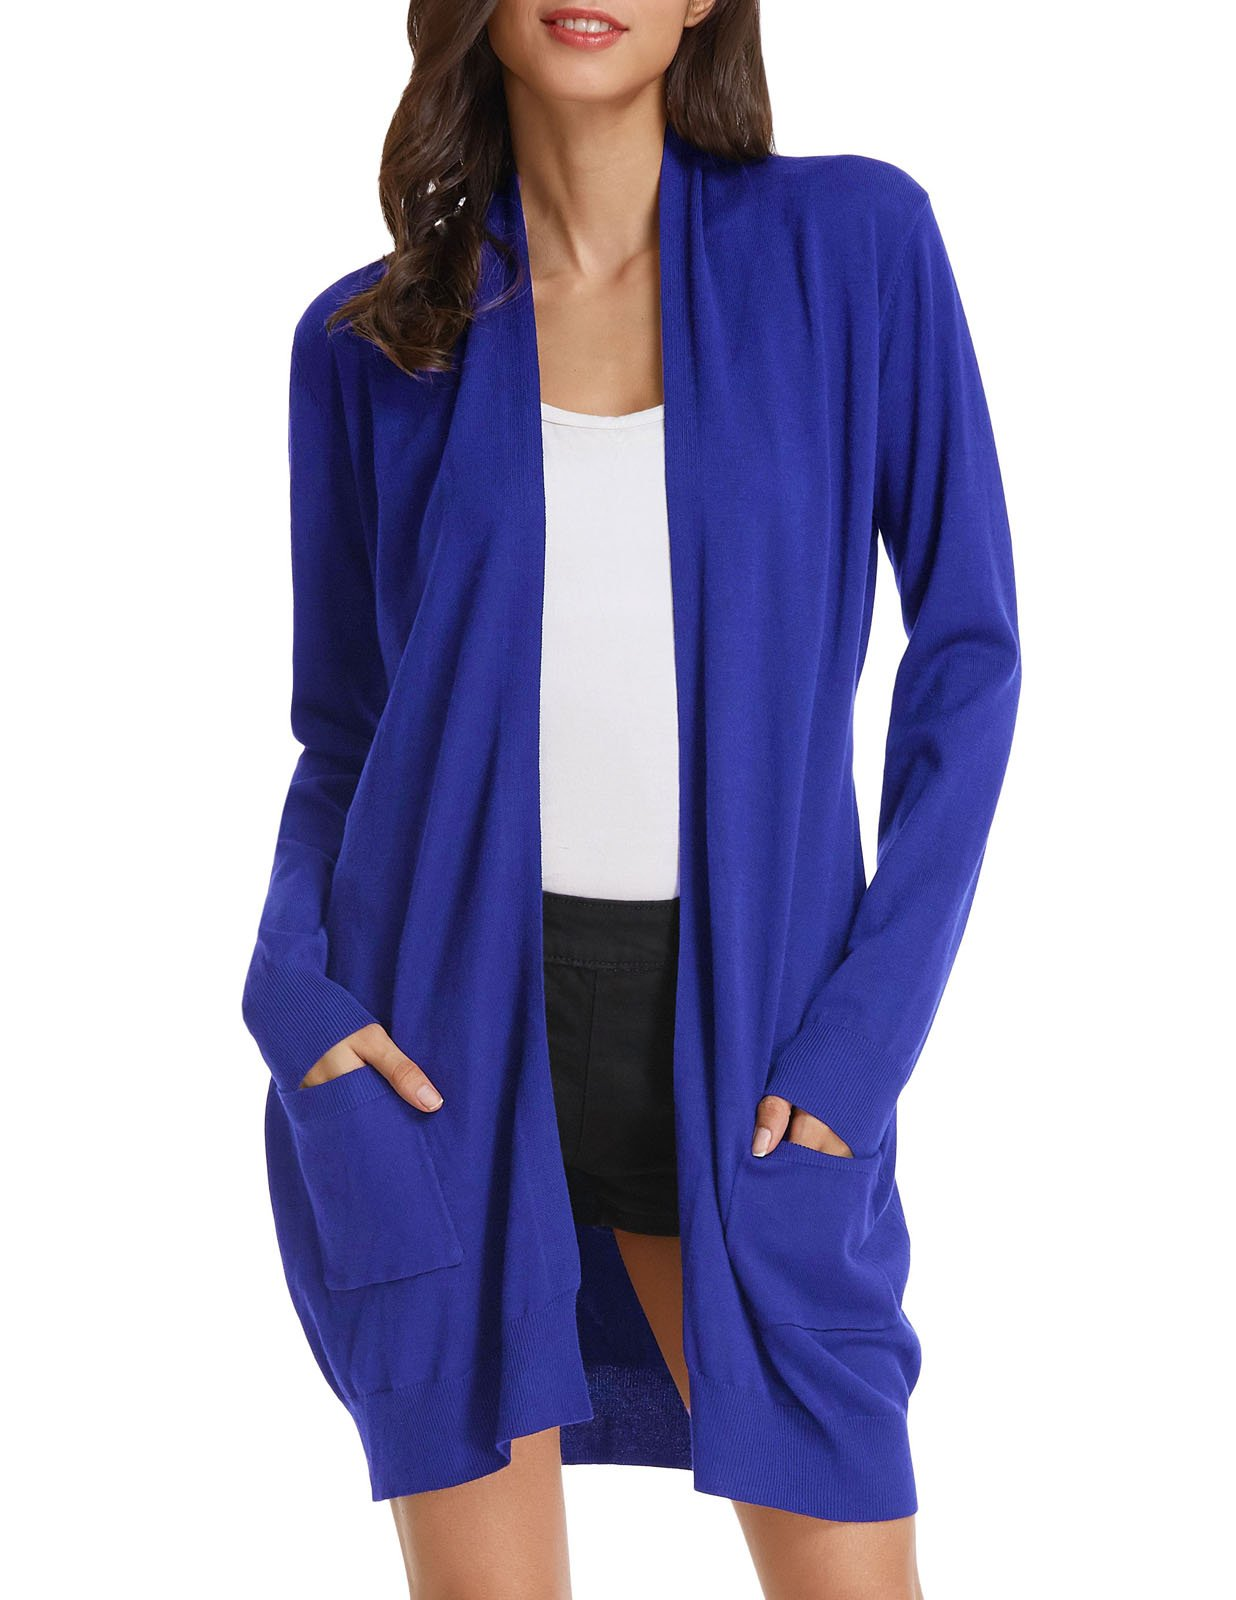 GRACE KARIN Womens Knitted Slim Fit Open Front Cardigan Sweater (XL,Royal Blue)